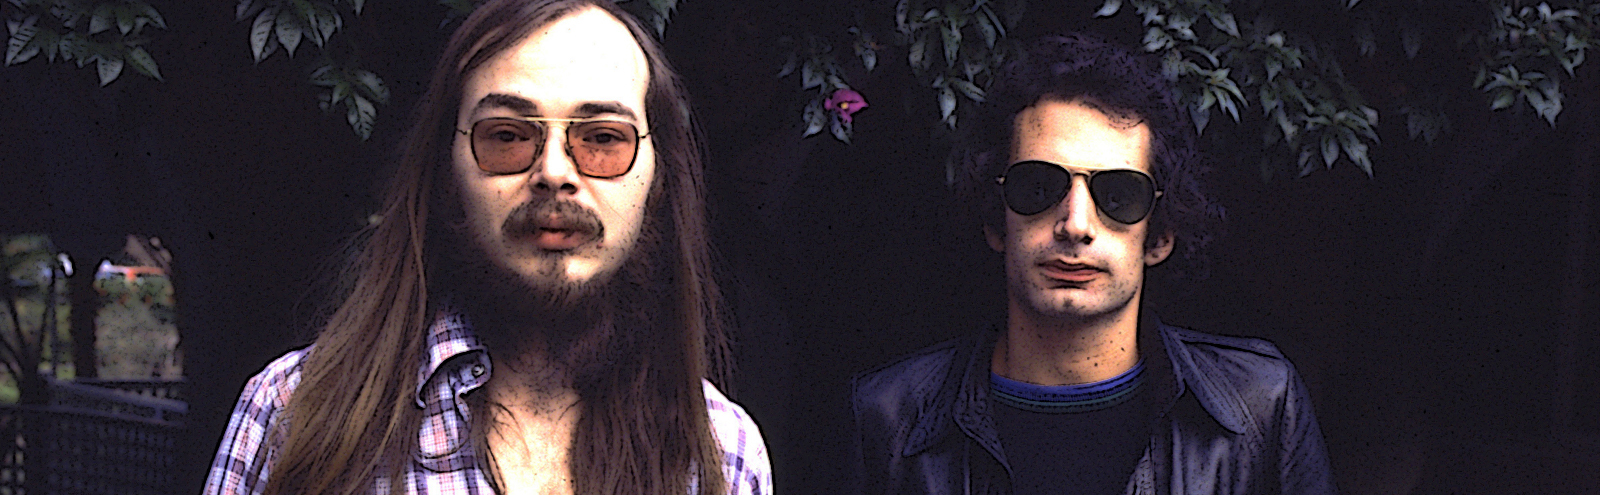 The Best Steely Dan Songs, Ranked